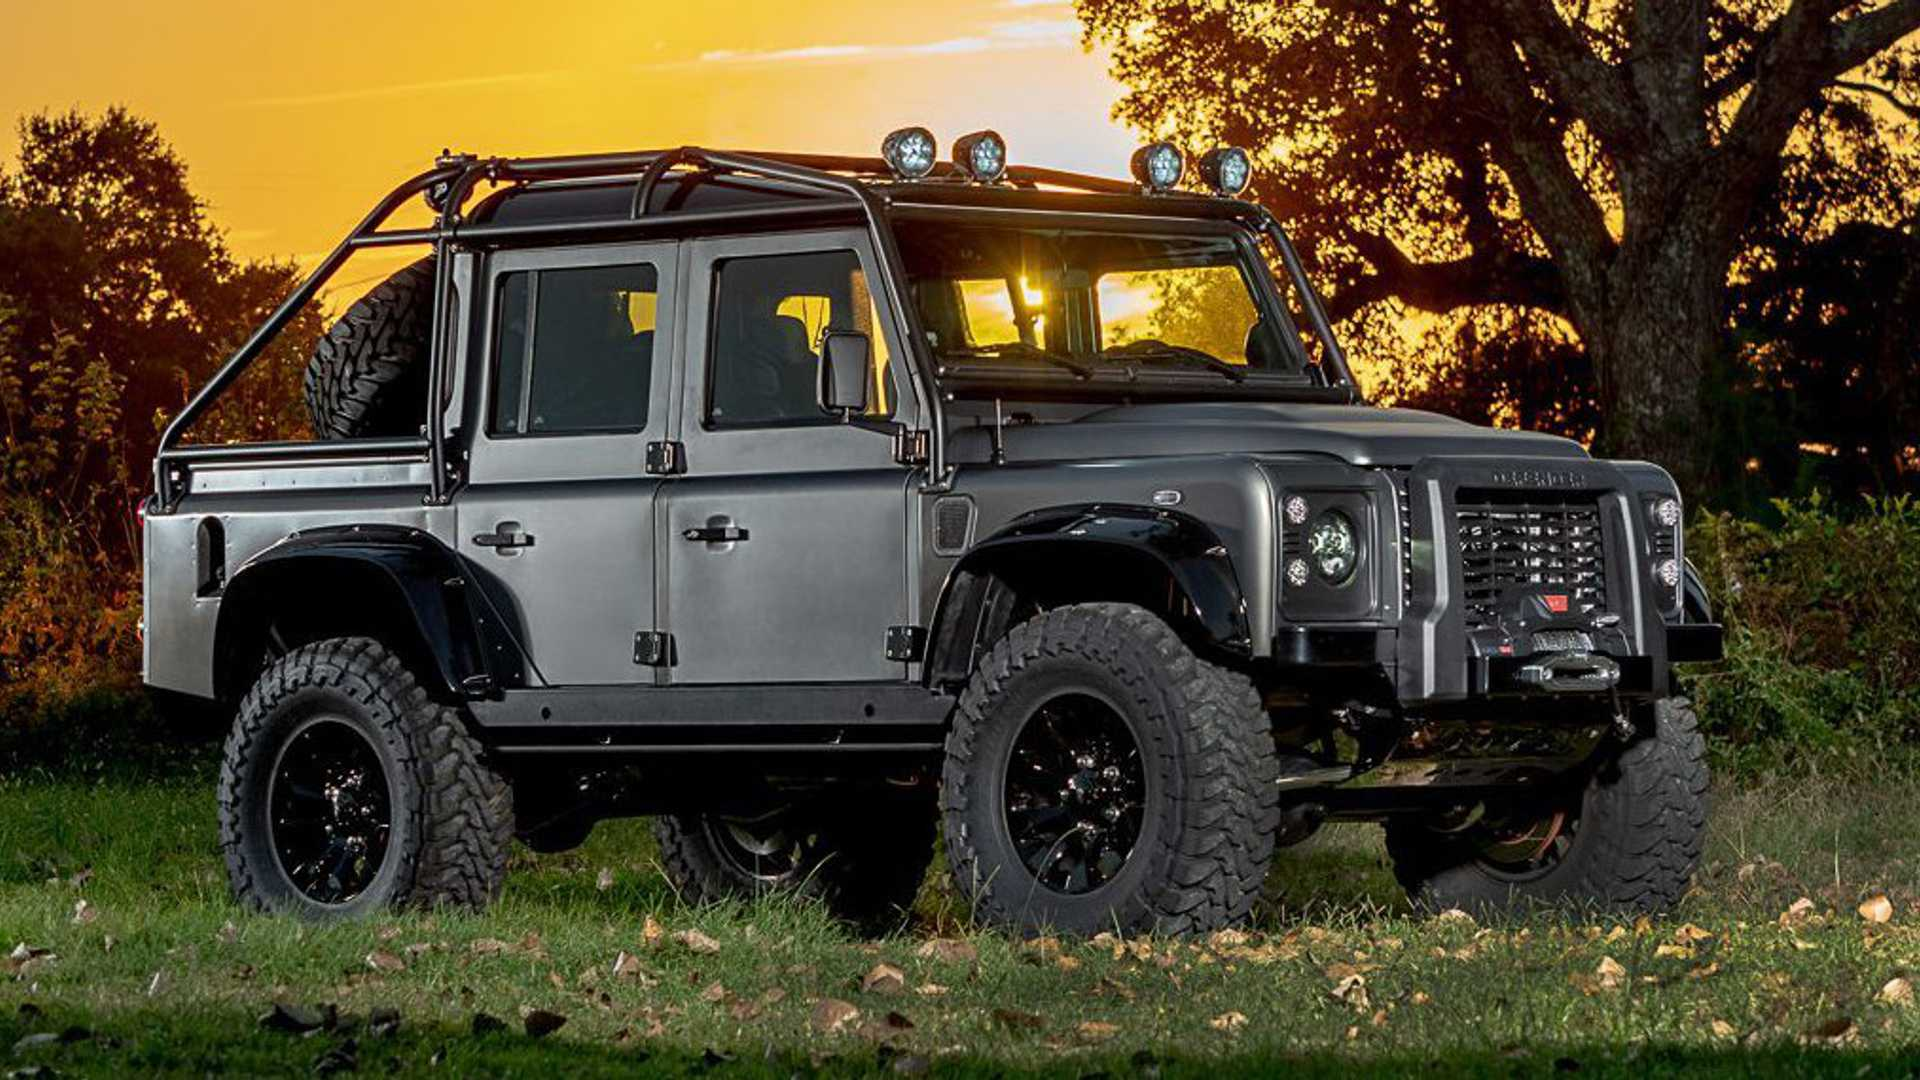 525-HP Land Rover Defender Is Powered By Corvette Engine